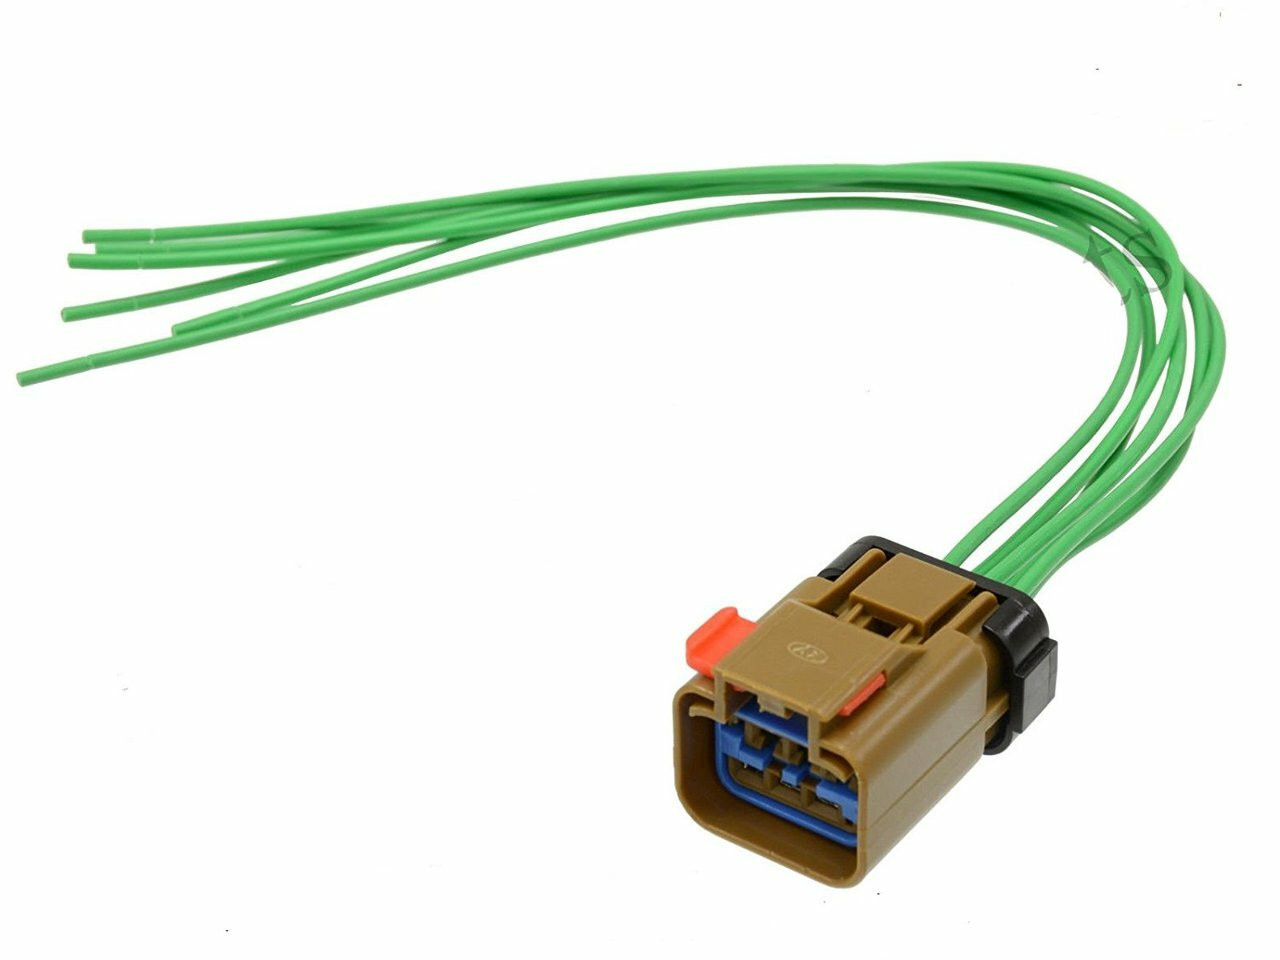 small resolution of wiring harness pigtail connector kit repairs or replaces power chrysler wiring harness connectors jeep wiring connectors